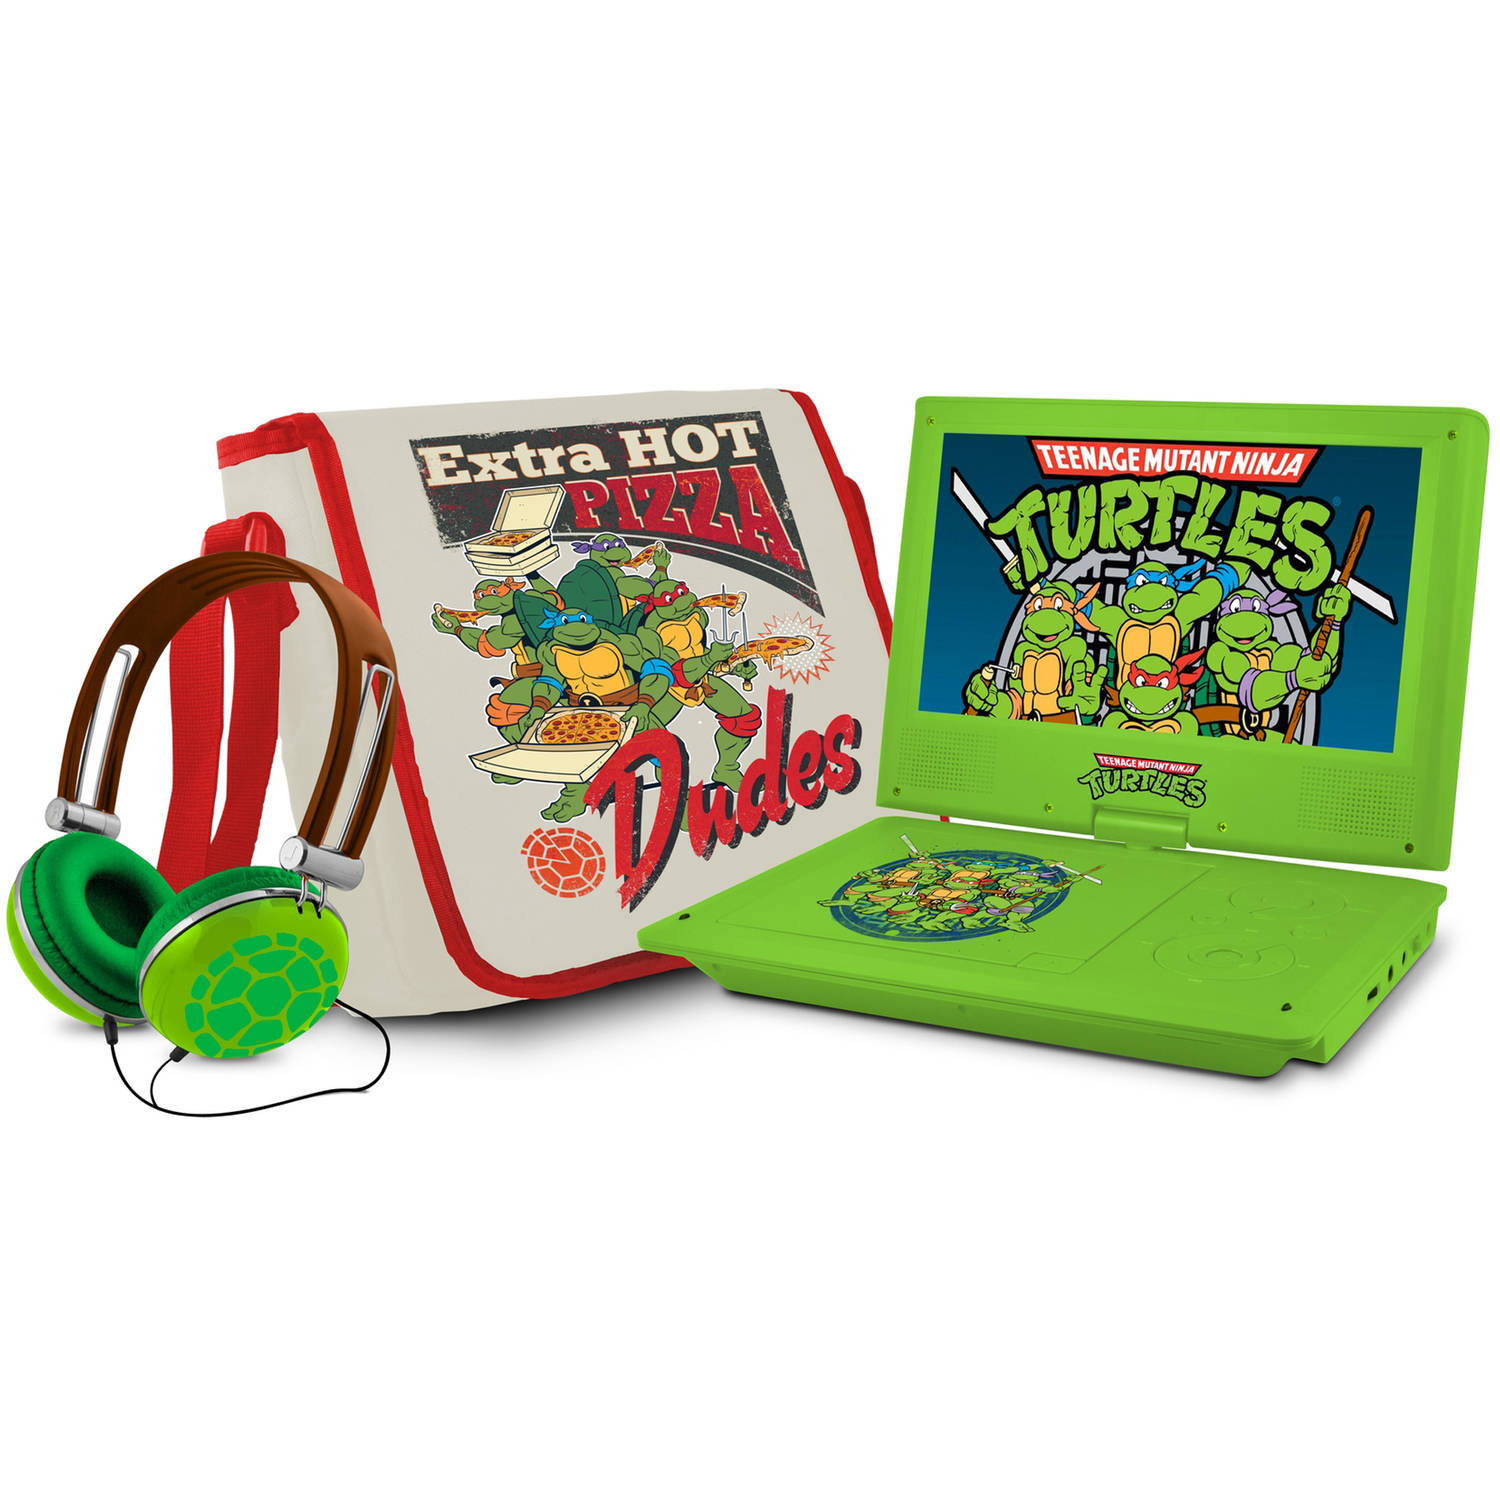 "Teenage Mutant Ninja Turtles 7"" Portable DVD Player with Carrying Bag and Headphones"